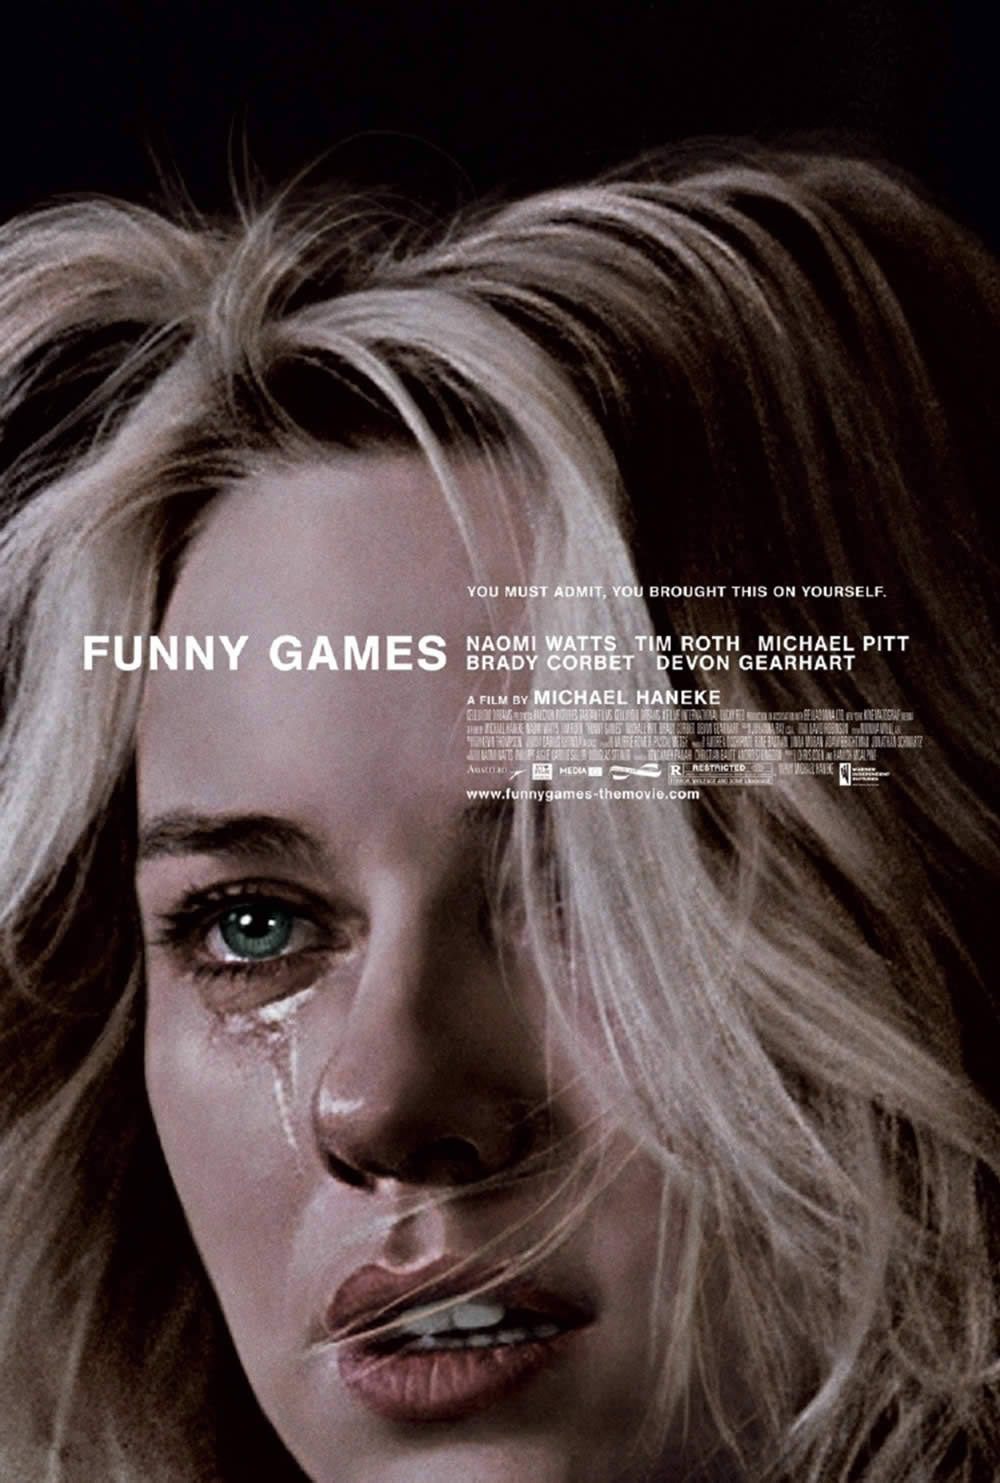 """Funny Games"" (1997). Poster design by Crew Creative Advertising, and artwork by Akiko Stehrenberger."